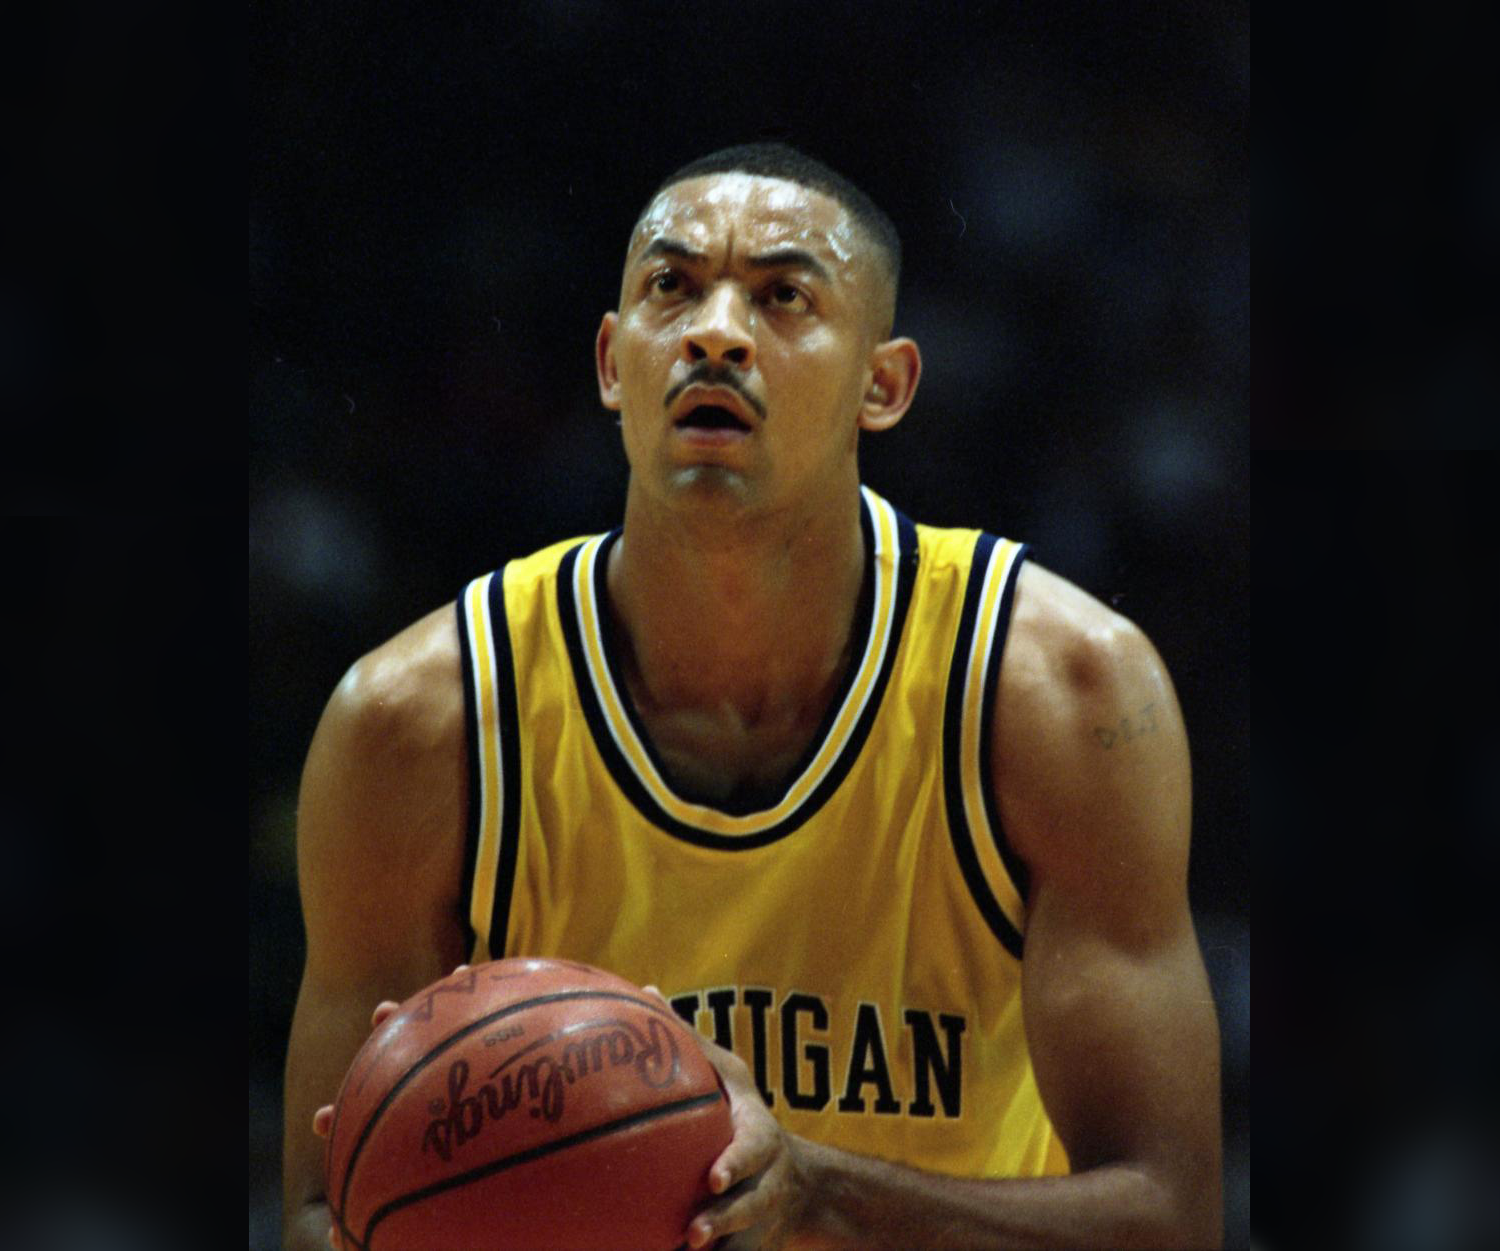 Juwan Howard Autograph Signing-Powers Sports Memorabilia